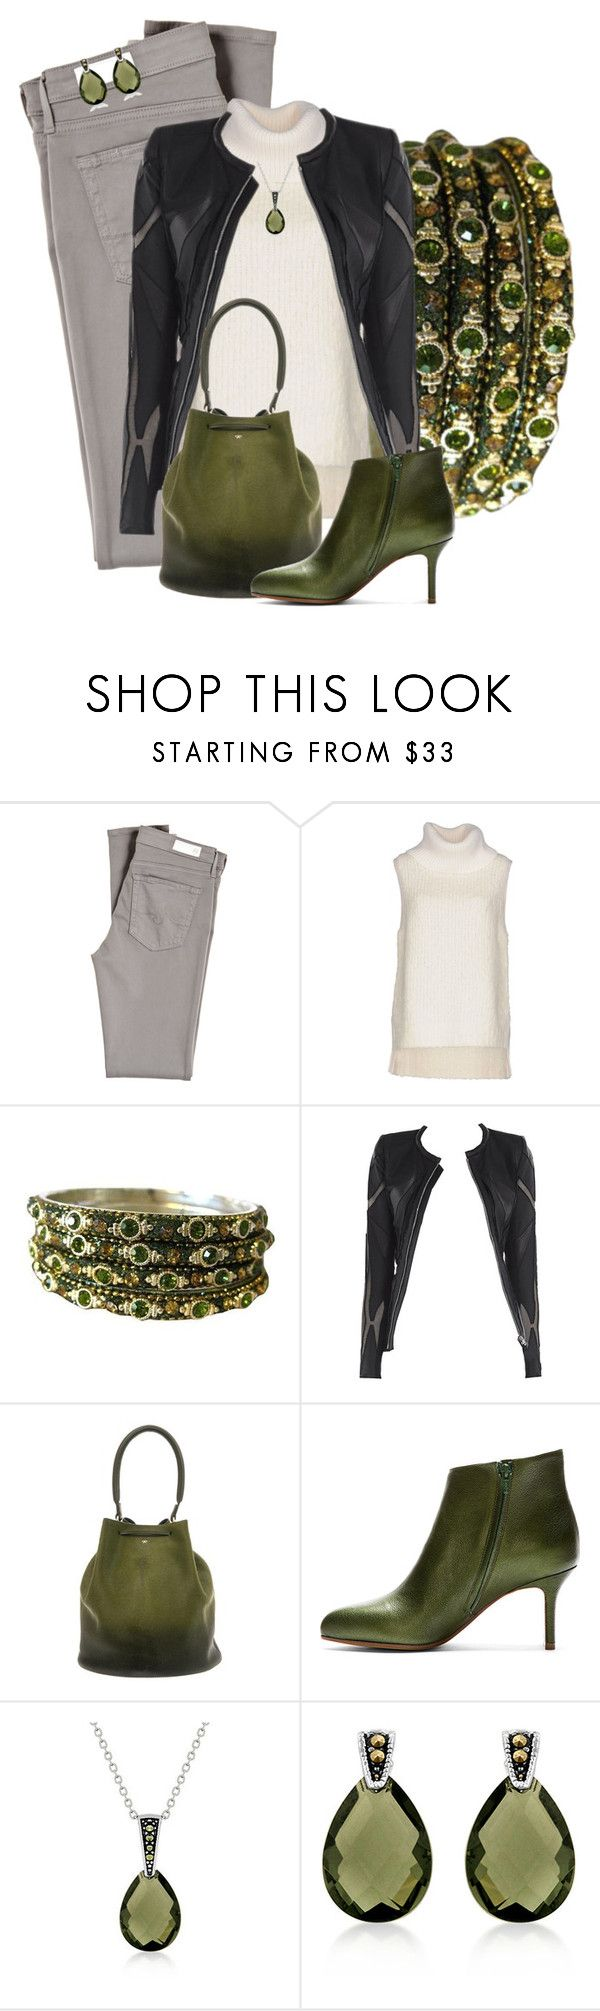 """""""Deep Green Teardrops"""" by michigangirl84 ❤ liked on Polyvore featuring AG Adriano Goldschmied, rag & bone, Allegra, Anya Hindmarch, Maison Margiela, Fantasy Jewelry Box and Bali"""